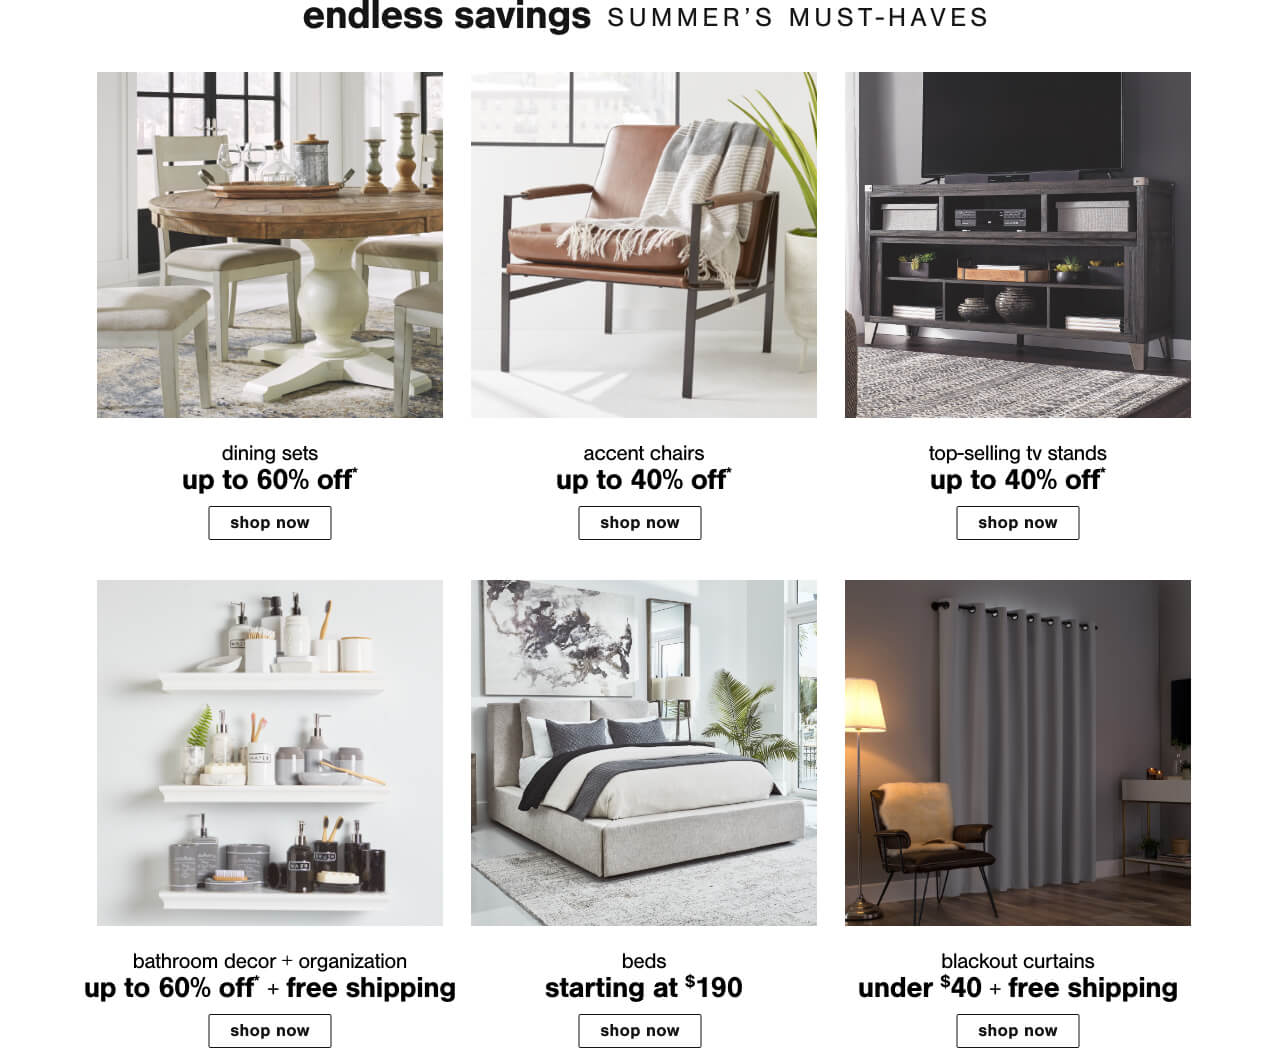 Kids Beds Up to 40% Off,Accent Chairs Up To 40% Off,Top Selling TV Stands Up to 40% Off  ,Top Selling TV Stands Up to 45% Off,Dining Tables Up to 60% Off,Blackout Curtains Under $40 + Free Shipping